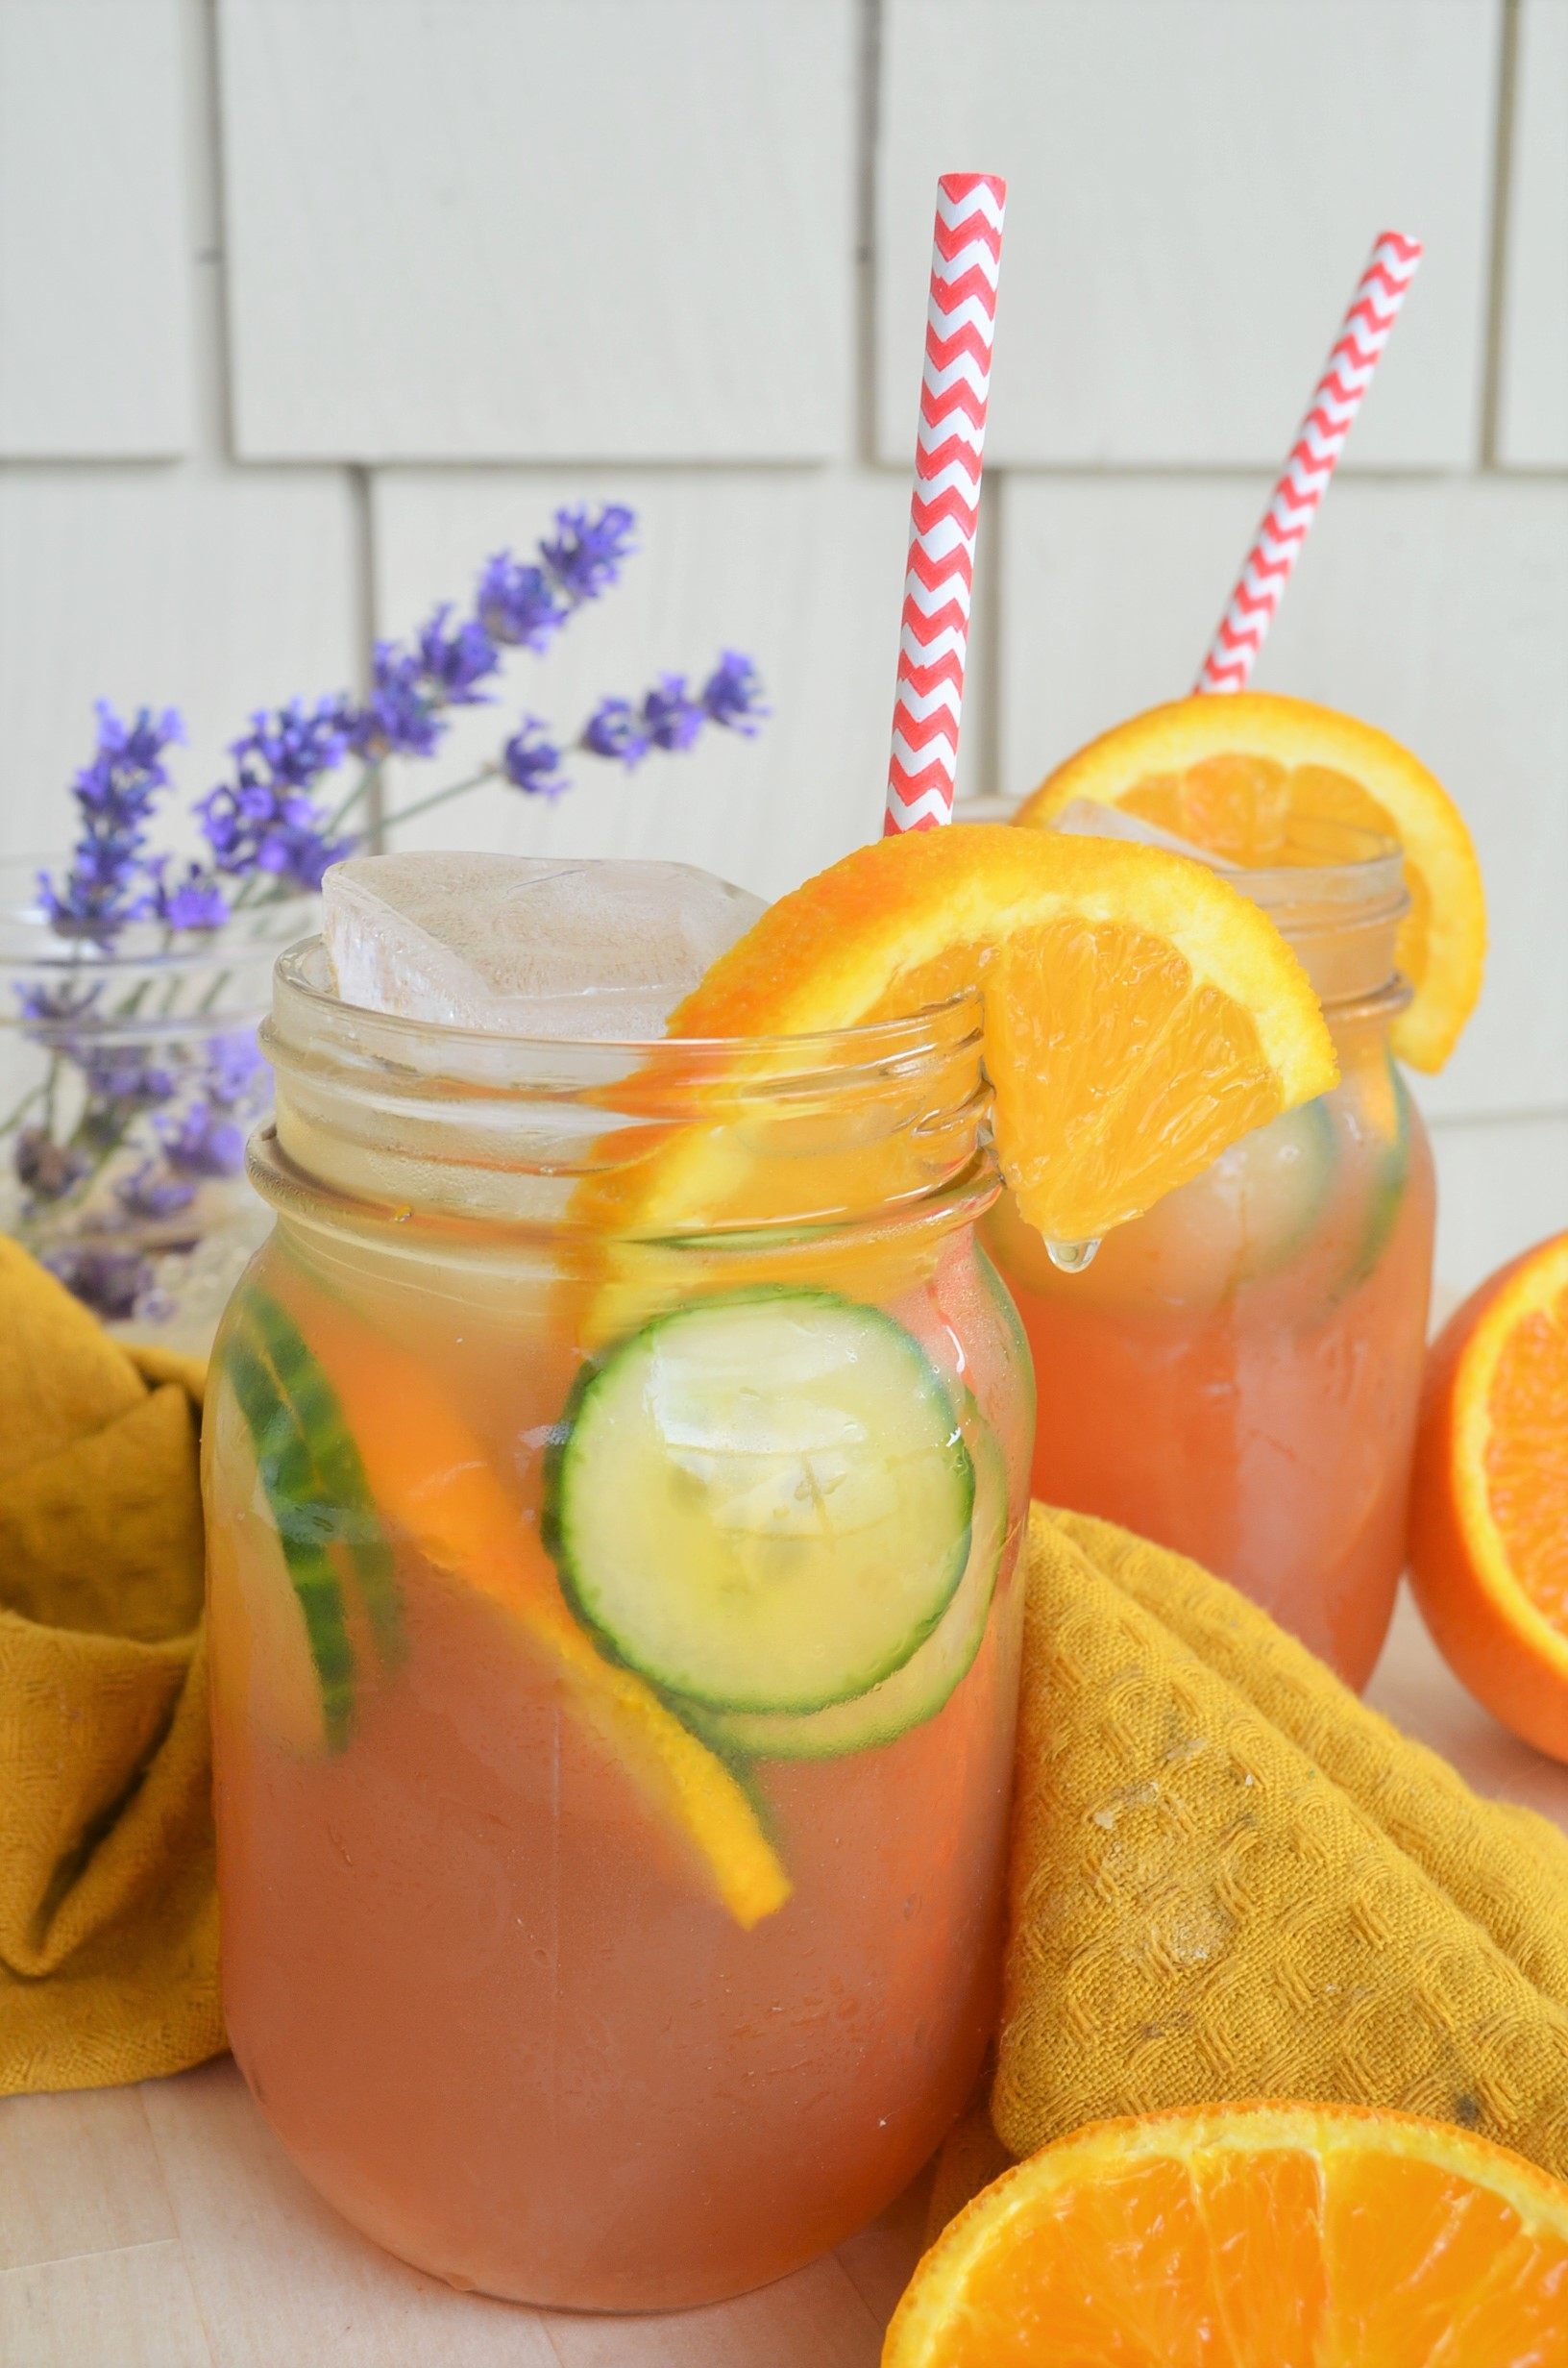 Homemade Orange Cucumber Shaken Iced Tea